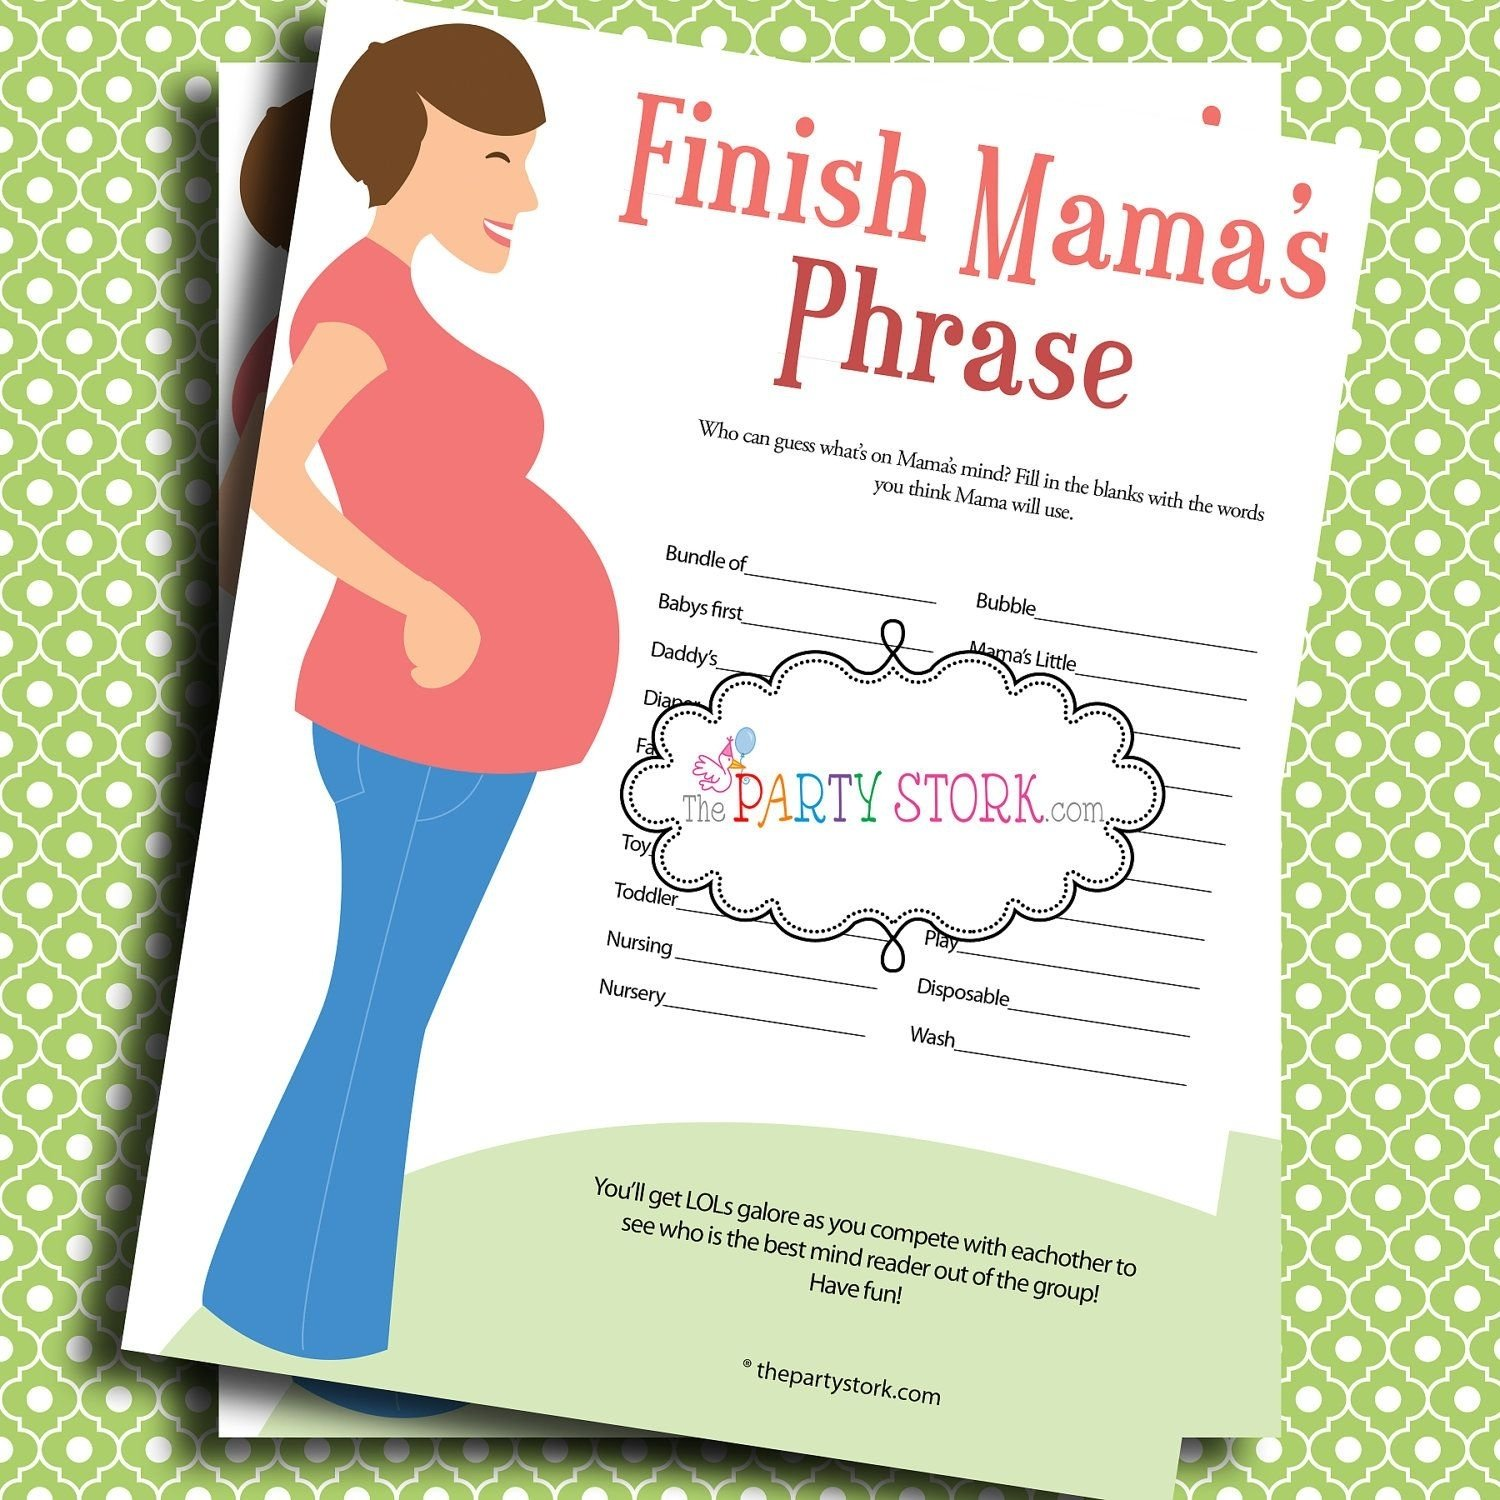 10 Fabulous Unique Baby Shower Games Ideas baby shower games finish mamas mommys phrase printable many 2020